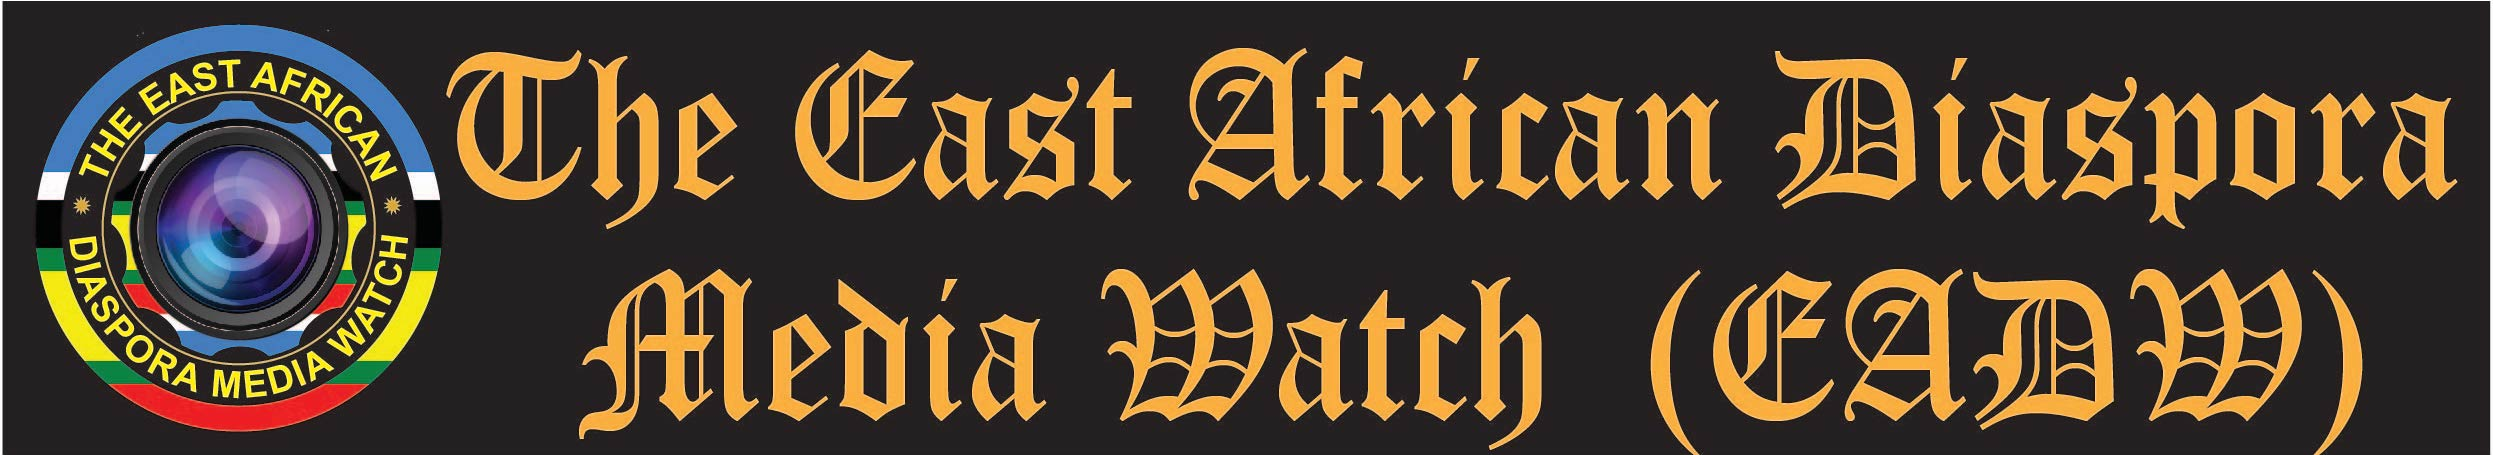 The East African Diaspora Media Watch (EADM)